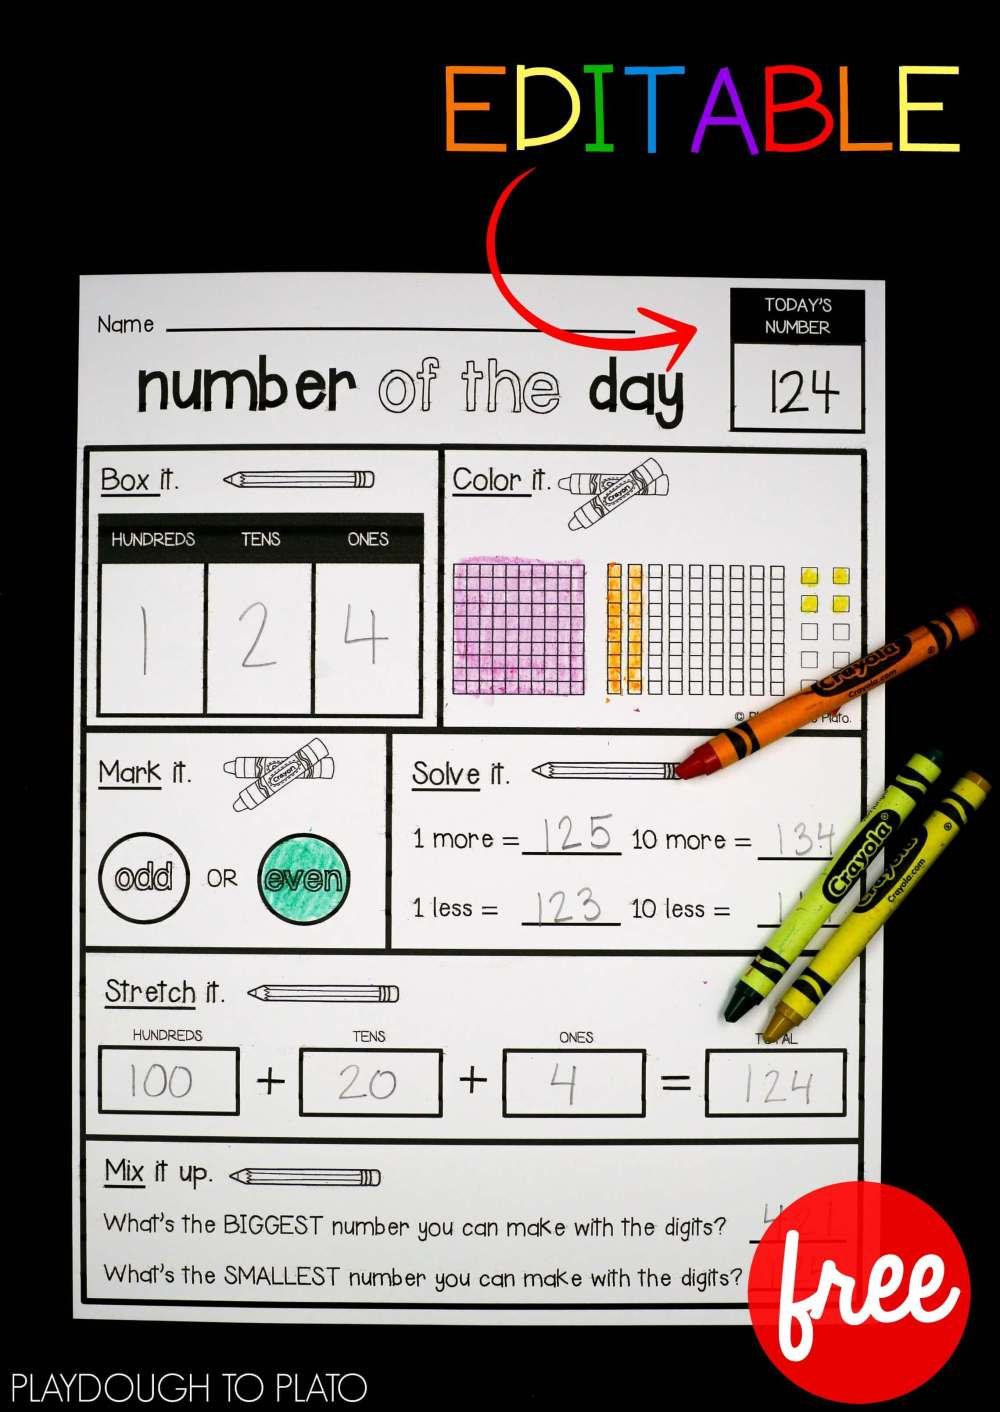 medium resolution of EDITABLE Number of the Day Sheet - Playdough To Plato